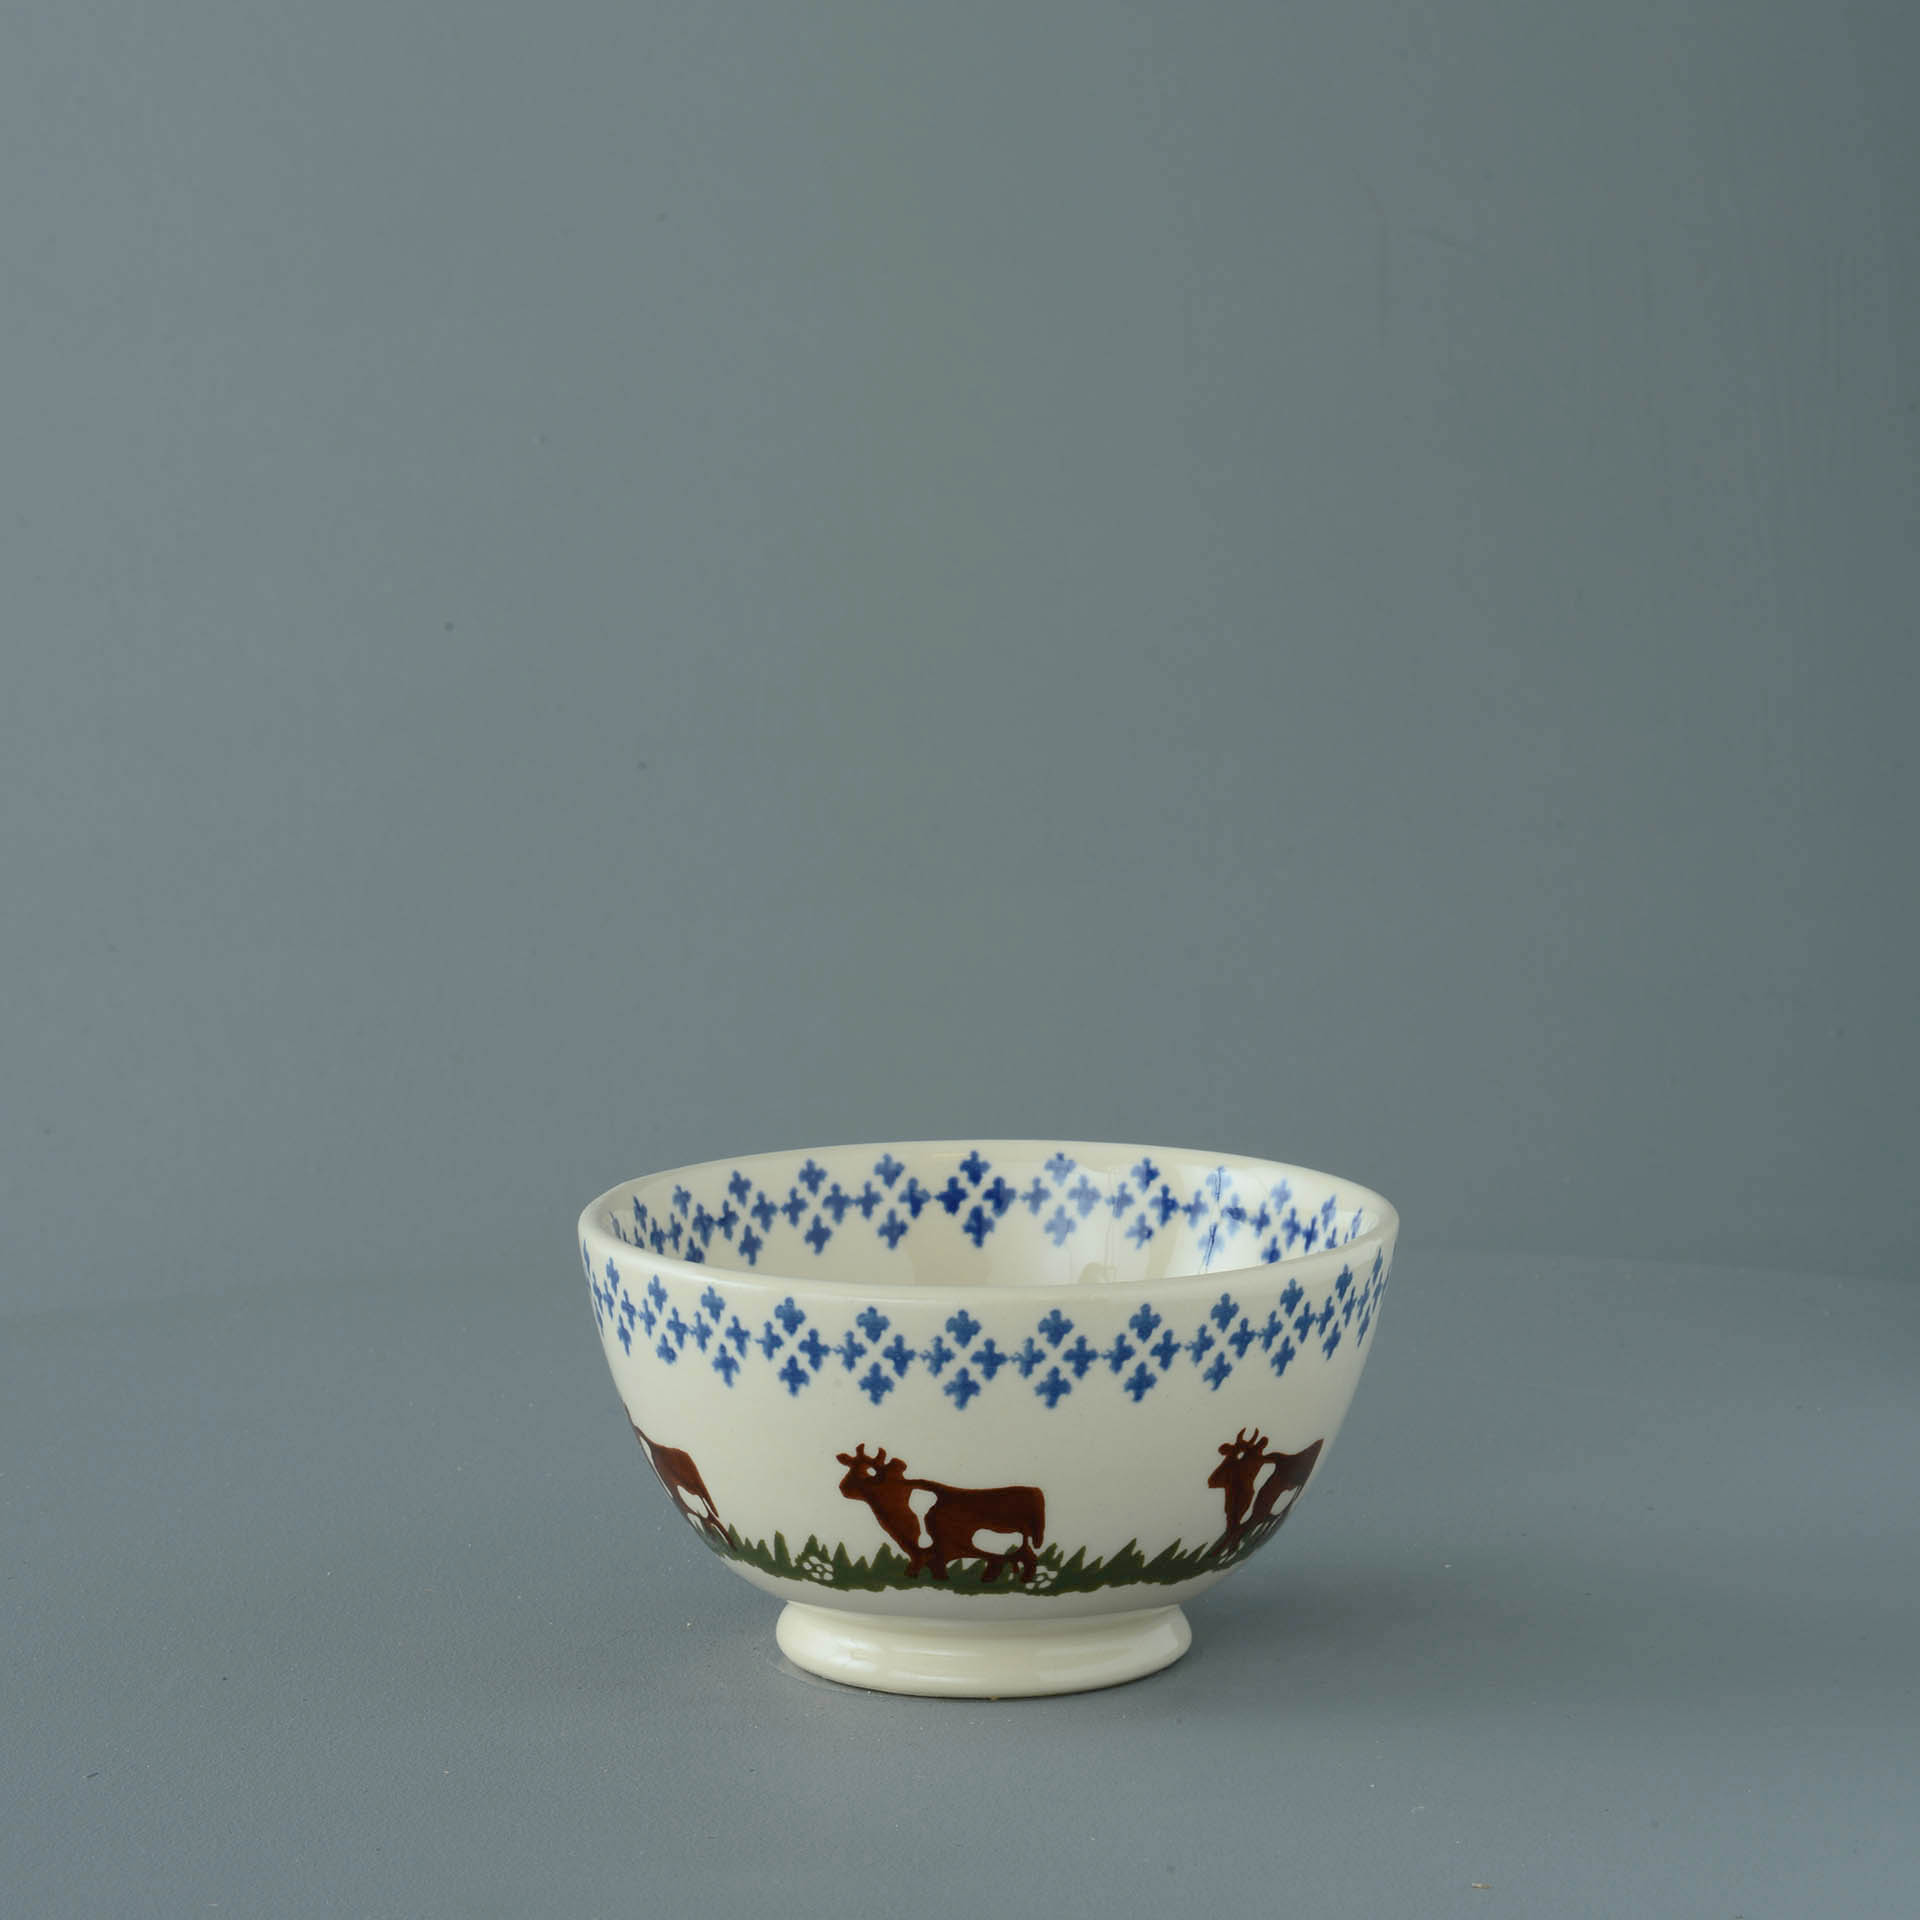 Cows Cereal Bowl 7 x 13cm